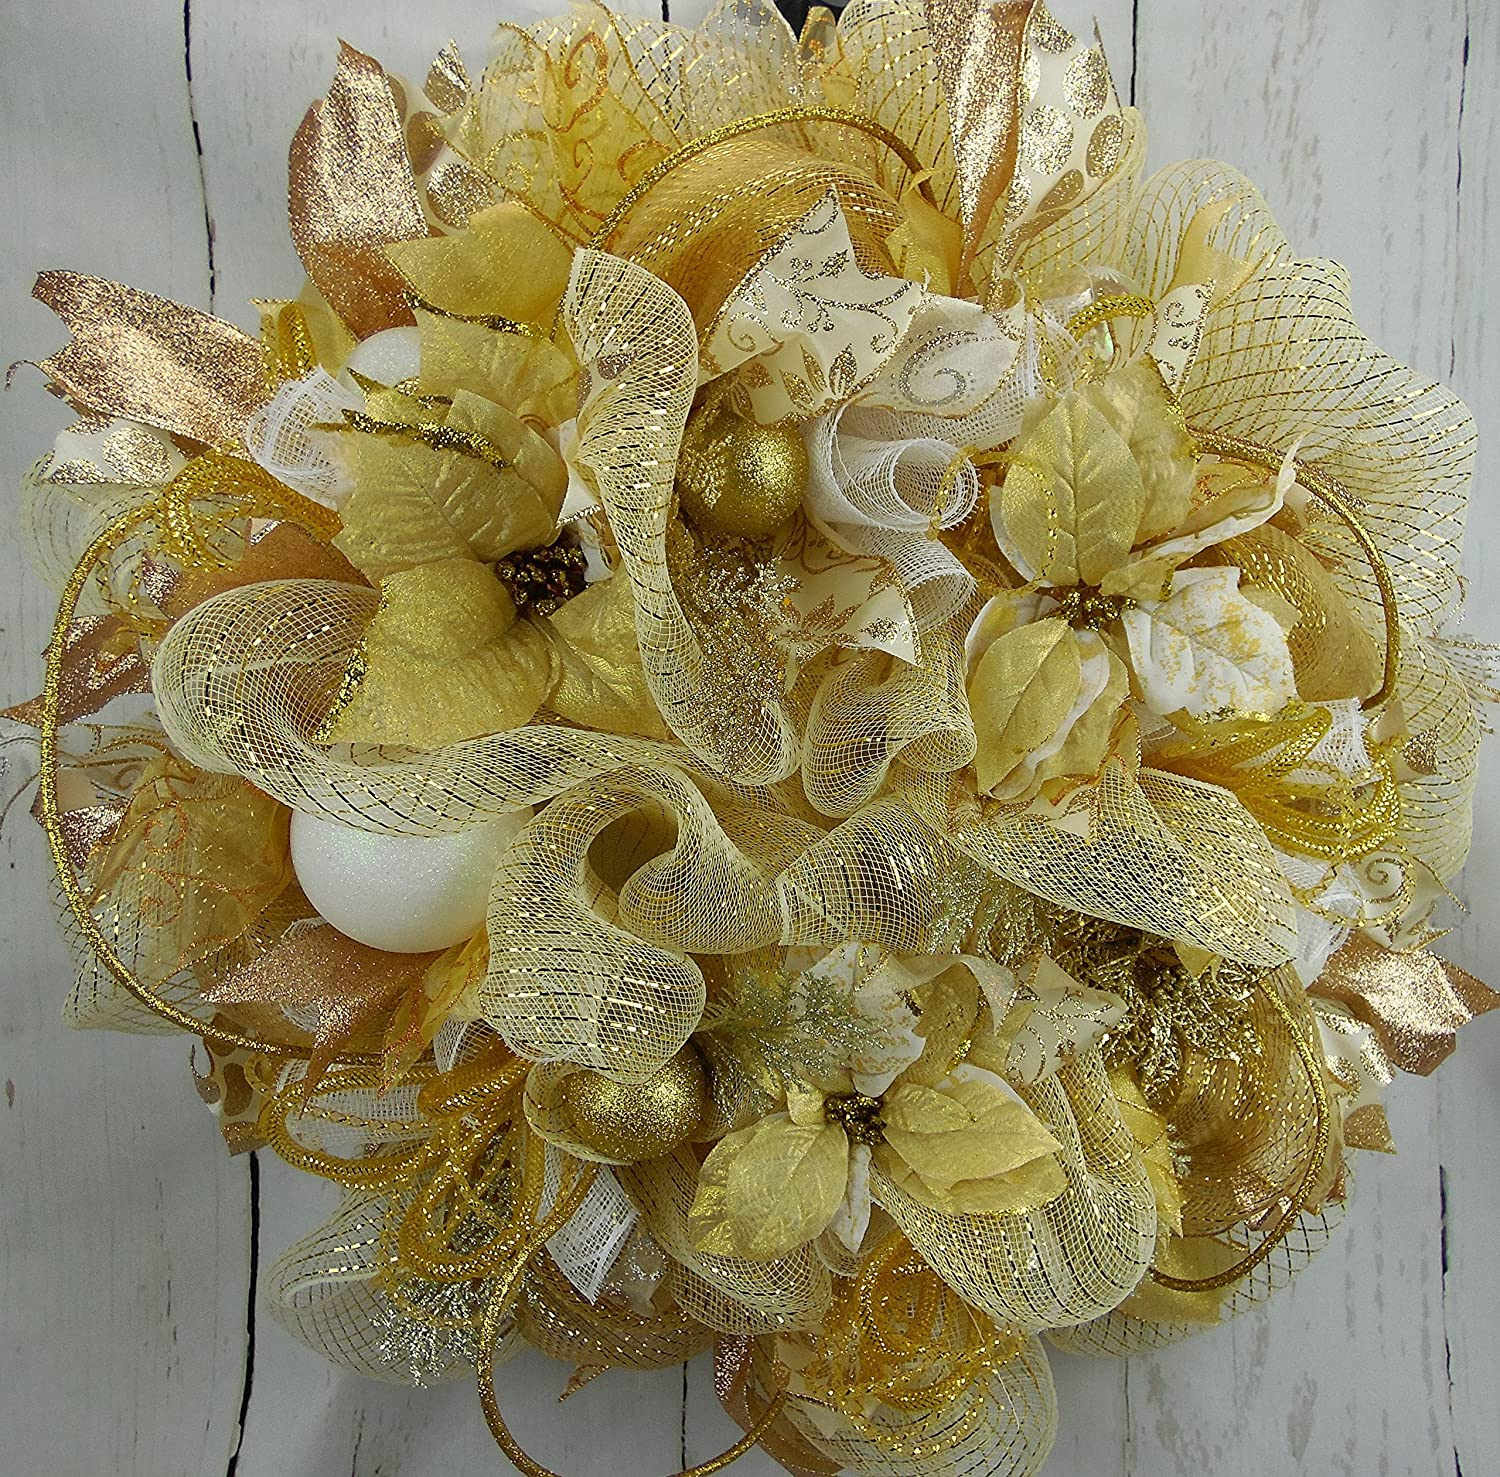 Handmade Champagne Gold and White Poinsettia Christmas Wreath